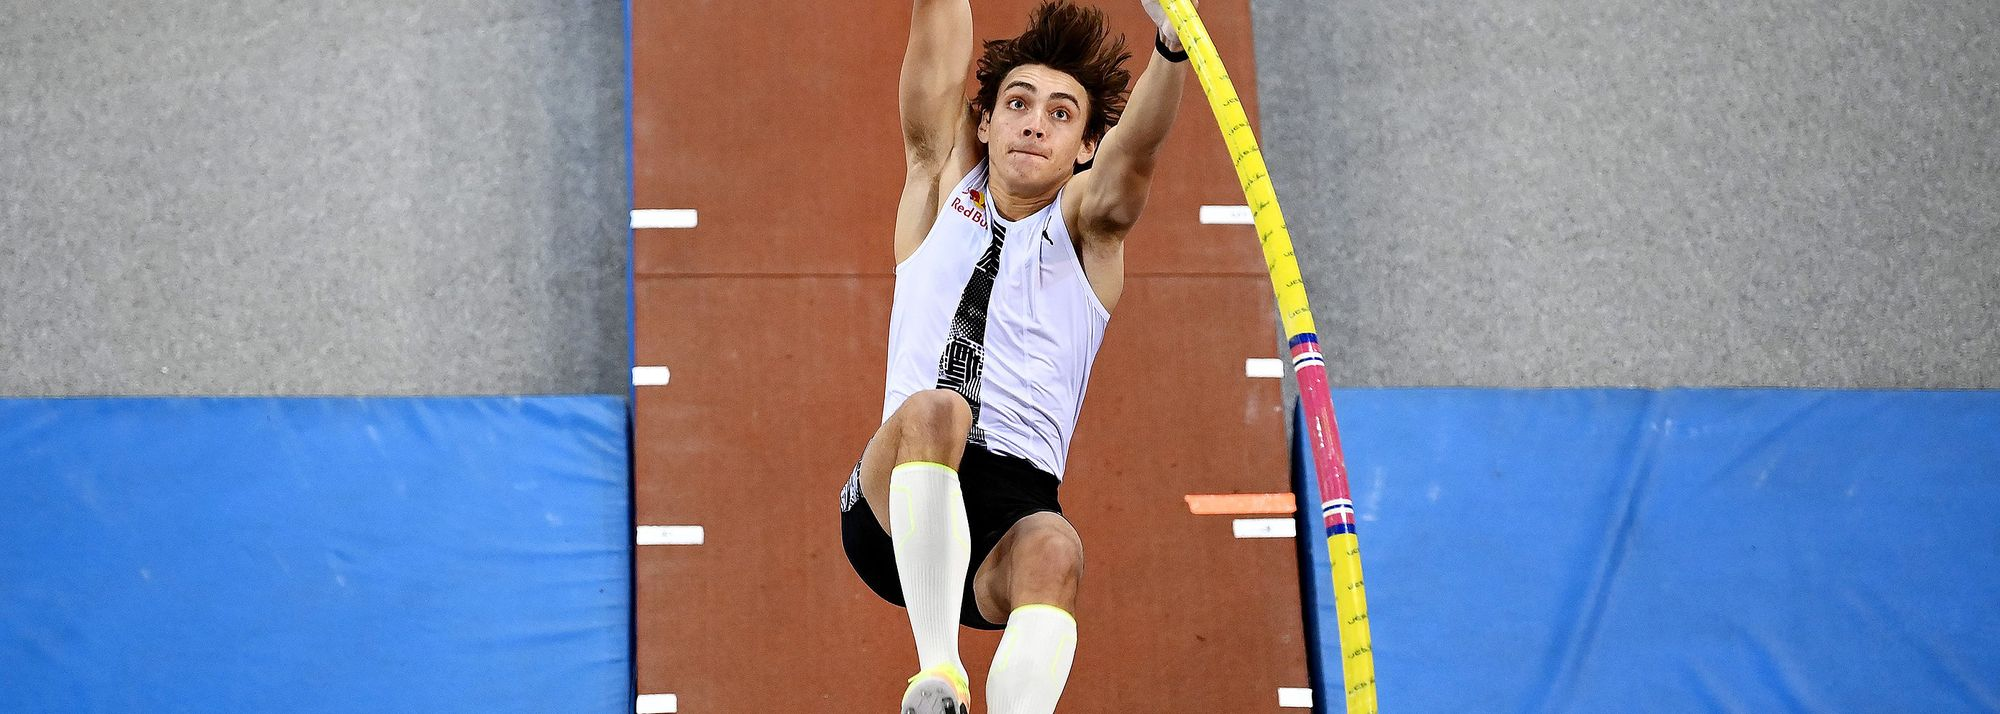 World record-holder Mondo Duplantis returned to action at the Serbian Open Indoor Meeting in Belgrade, winning the pole vault with a world-leading 6.10m